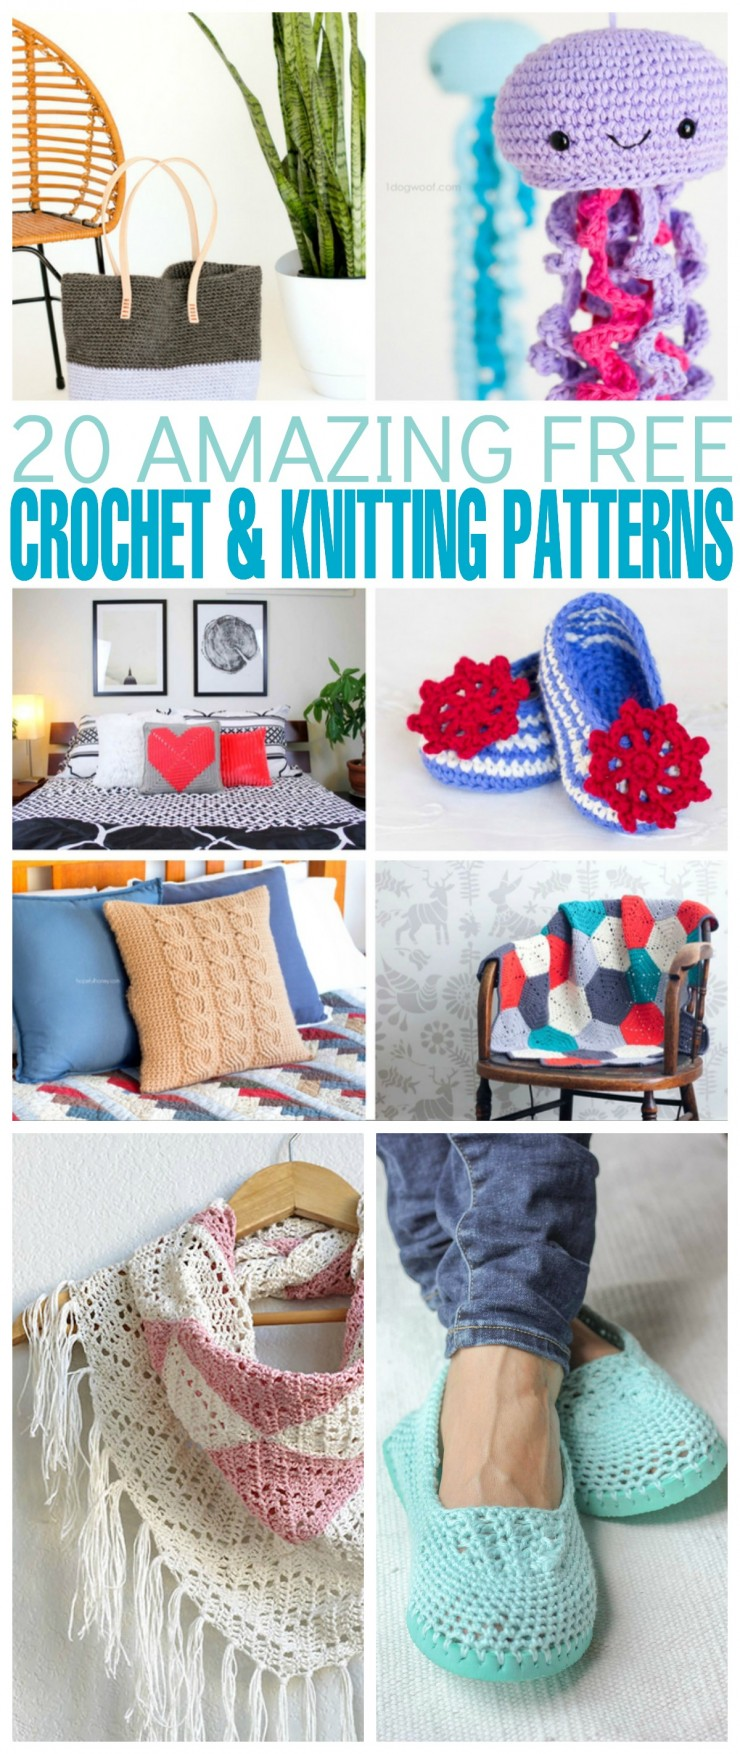 I put together a list of 20 amazing free crochet and knitting patterns you can use to create unique gifts for the most special people in your life.